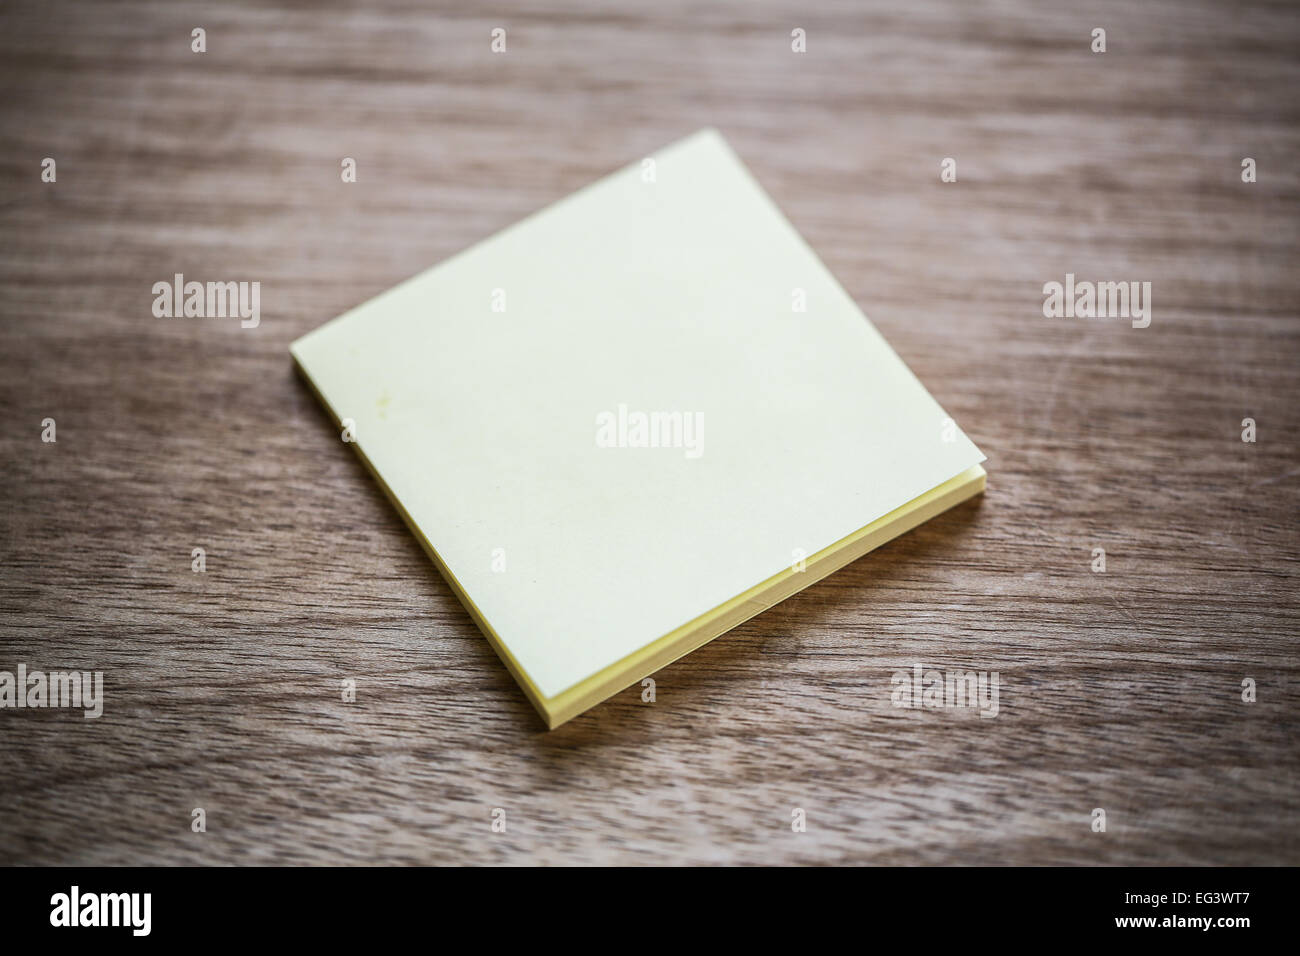 A post-it note. - Stock Image